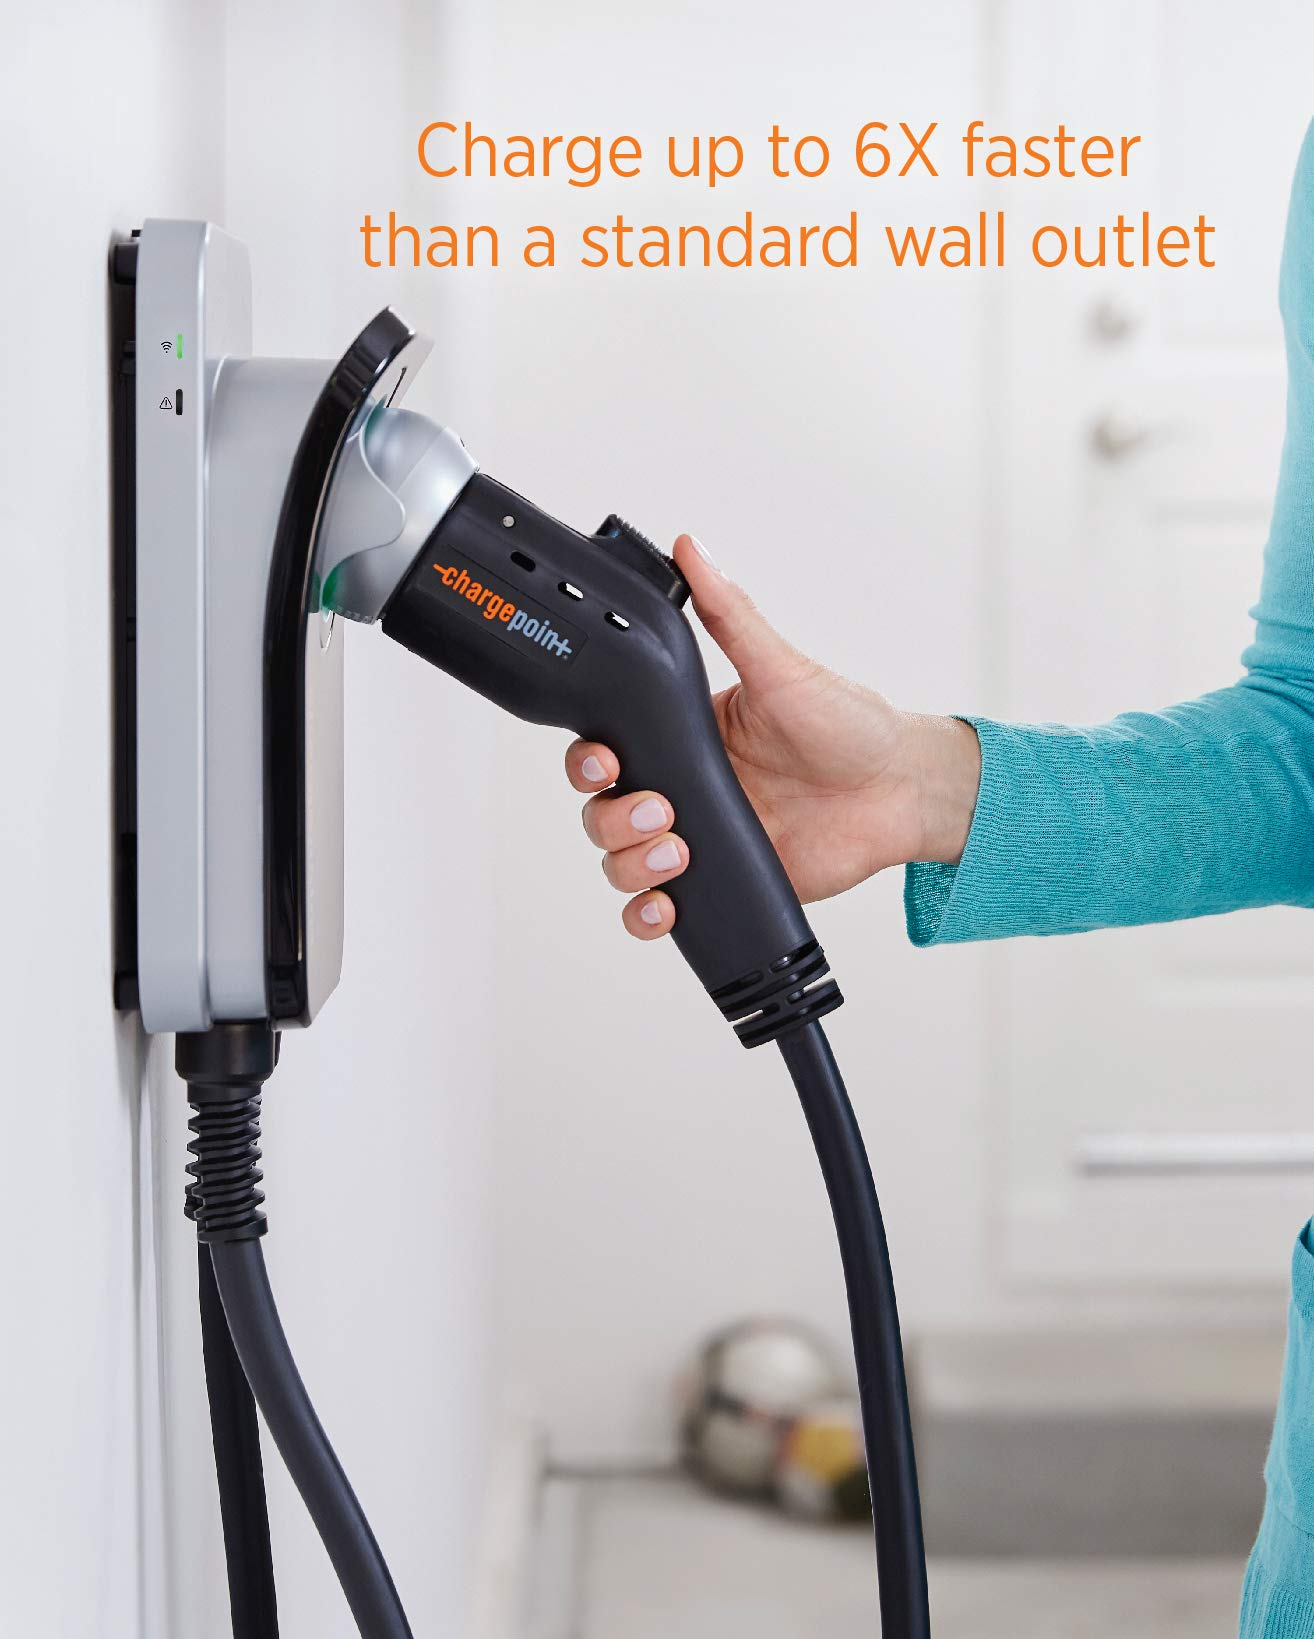 ChargePoint Home WiFi Enabled Electric Vehicle (EV) Charger - Level 2 240V EVSE, 32A Electric Car Charger for All EVs, UL Listed, ENERGY STAR Certified, Hardwired (no outlet needed), 18 Ft Cable by ChargePoint (Image #3)